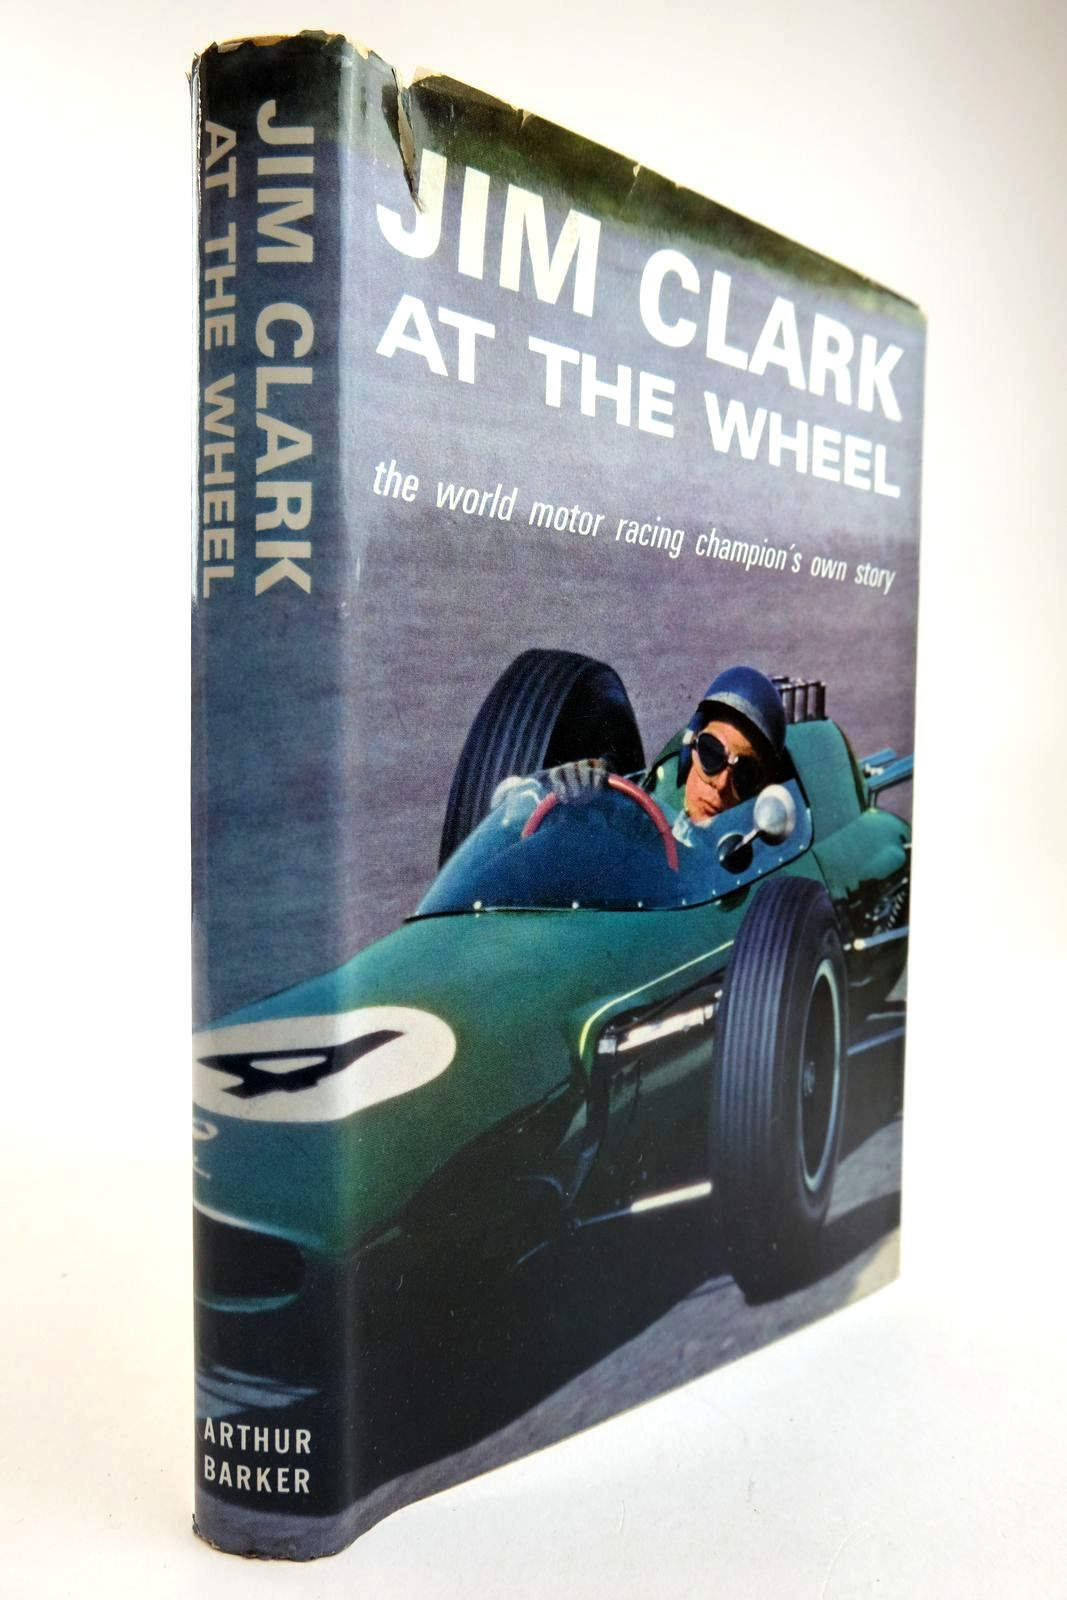 Photo of JIM CLARK AT THE WHEEL THE WORLD MOTOR RACING CHAMPION'S OWN STORY written by Clark, Jim published by Arthur Barker Limited (STOCK CODE: 2134313)  for sale by Stella & Rose's Books